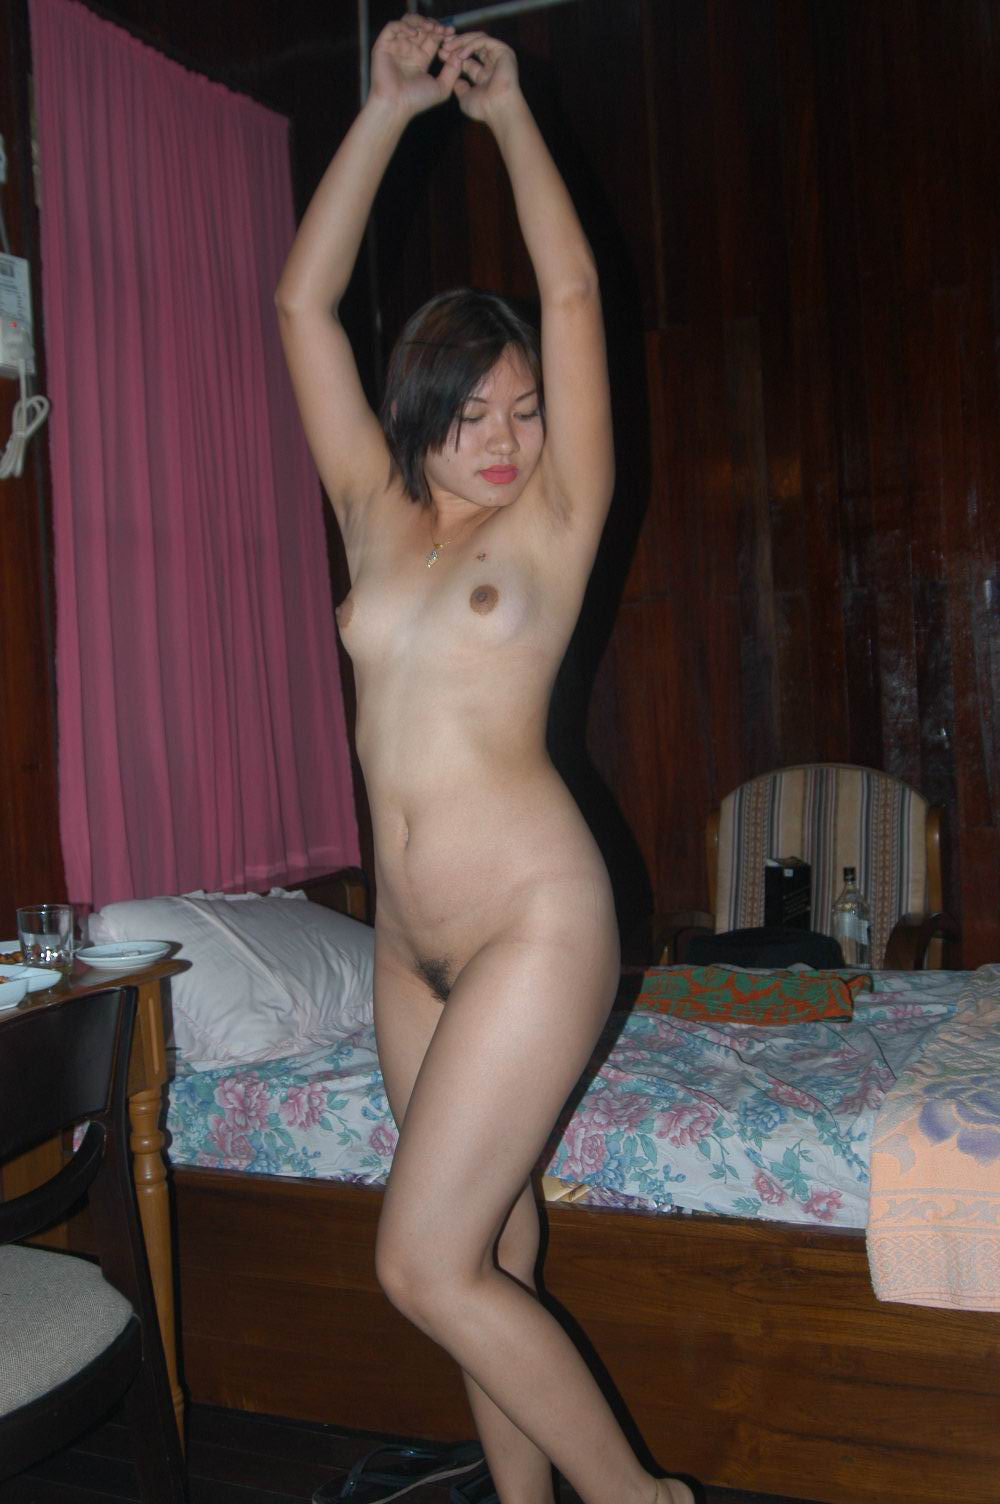 Girls nude on bed